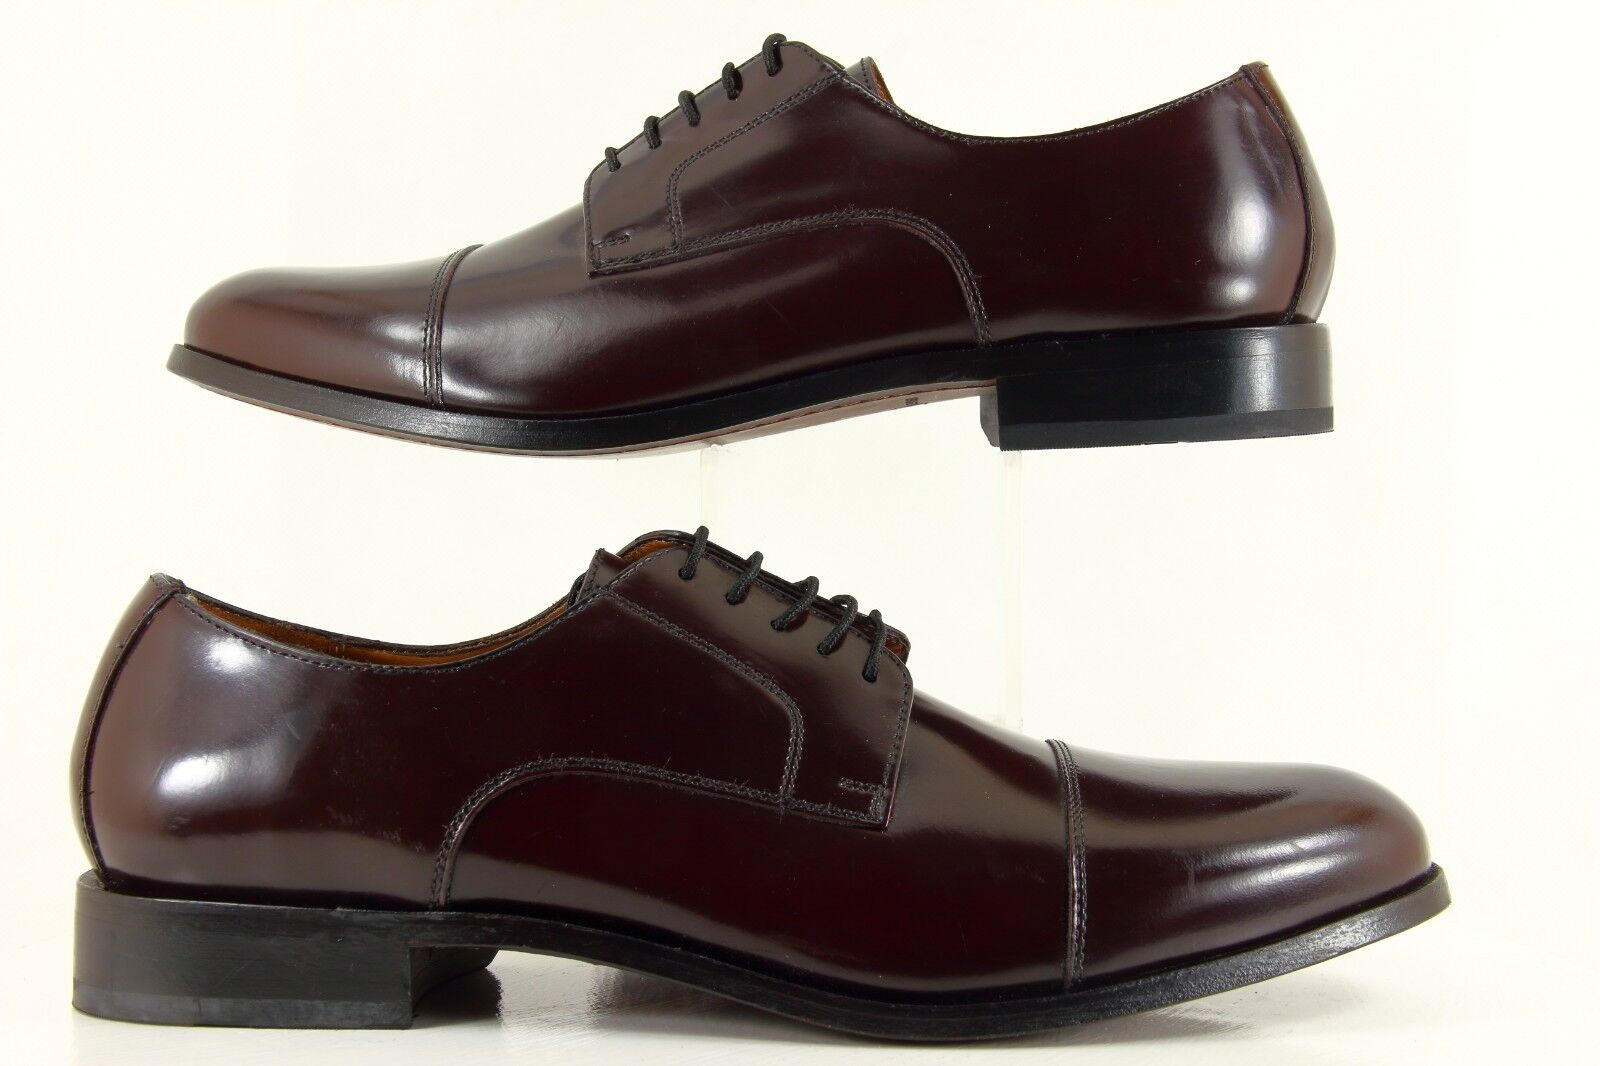 Florsheim Men's Broxton Cap Toe Oxford Burgundy shoes 11222-601 Size 10.5D